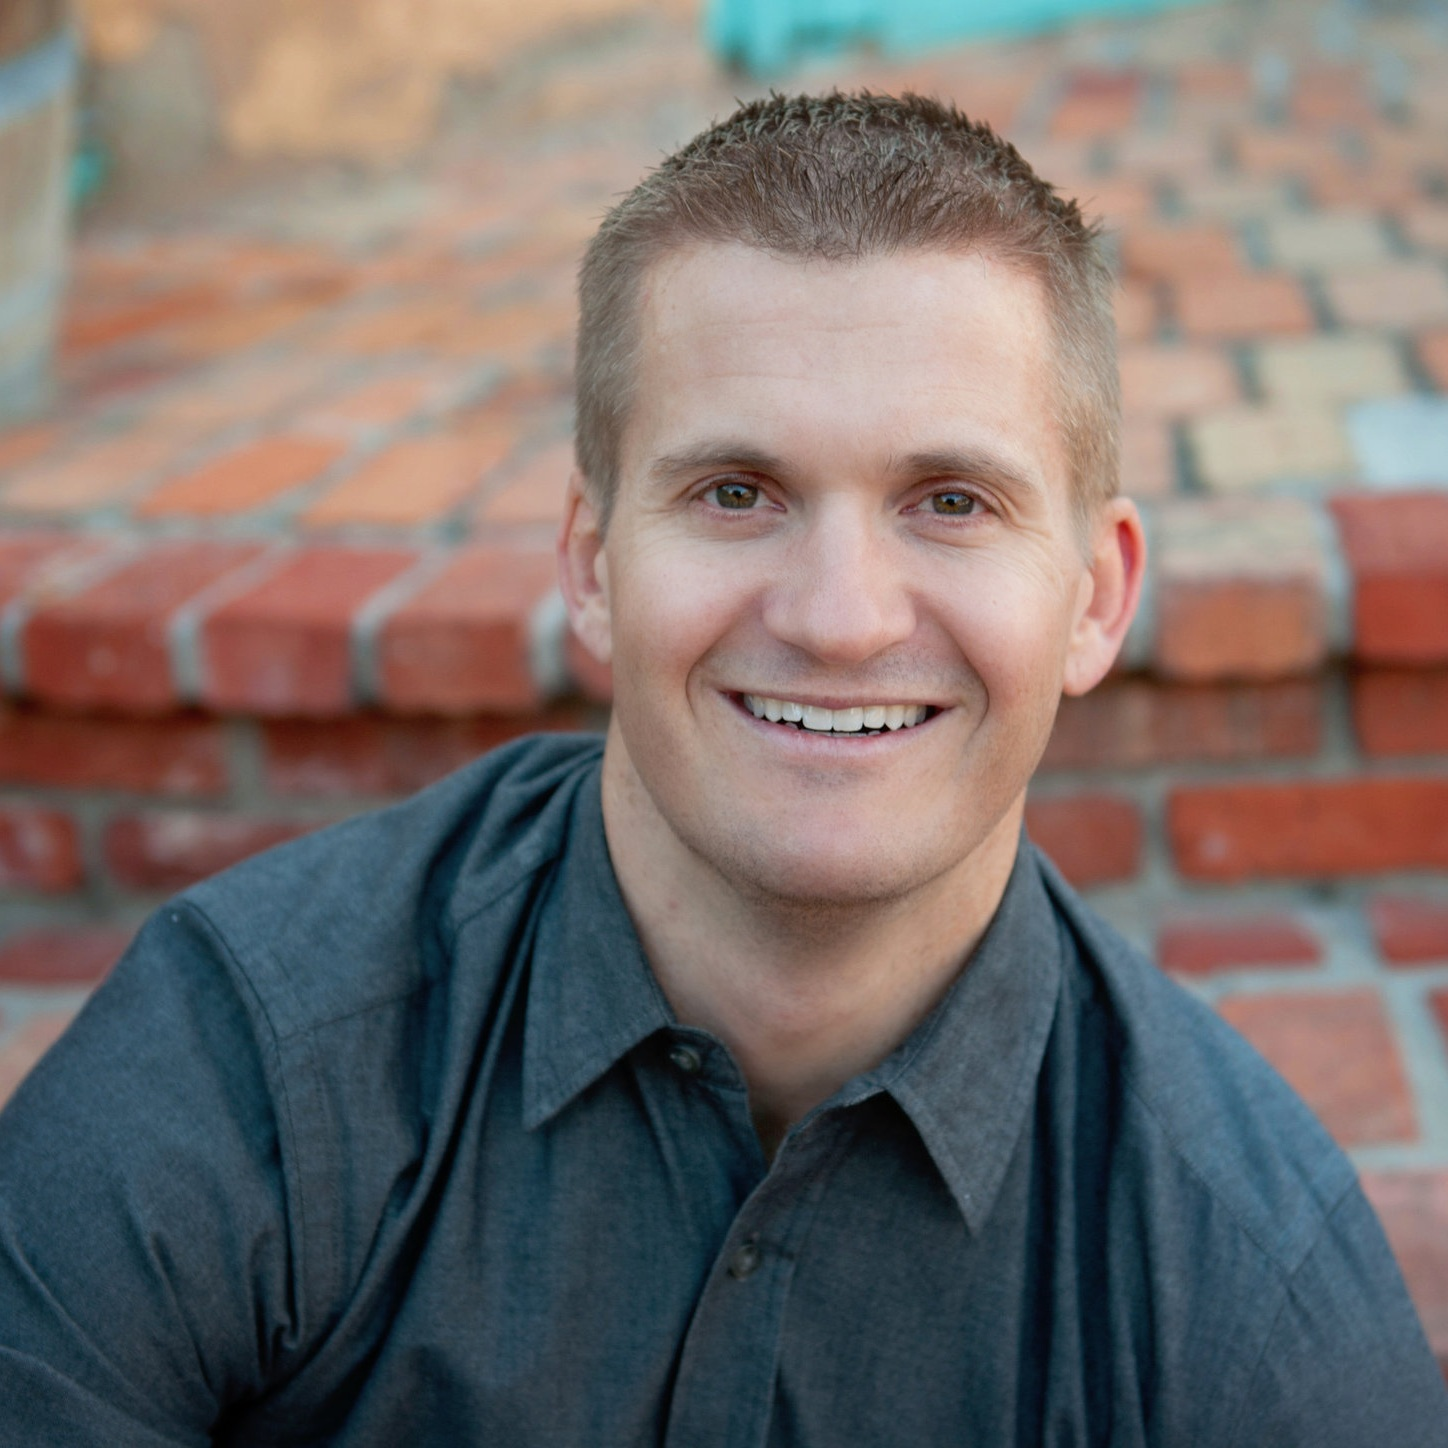 Peter Roukema, DMD - Dr. Roukema is dedicated to instilling confidence in his patients by providing honest, high-quality dental care in a comfortable manner. He earned his dental degree in 2008 from Case Western Reserve University School of Dental Medicine in Cleveland, Ohio. Prior to this, he studied chemistry and biology at the University of Northern Colorado.